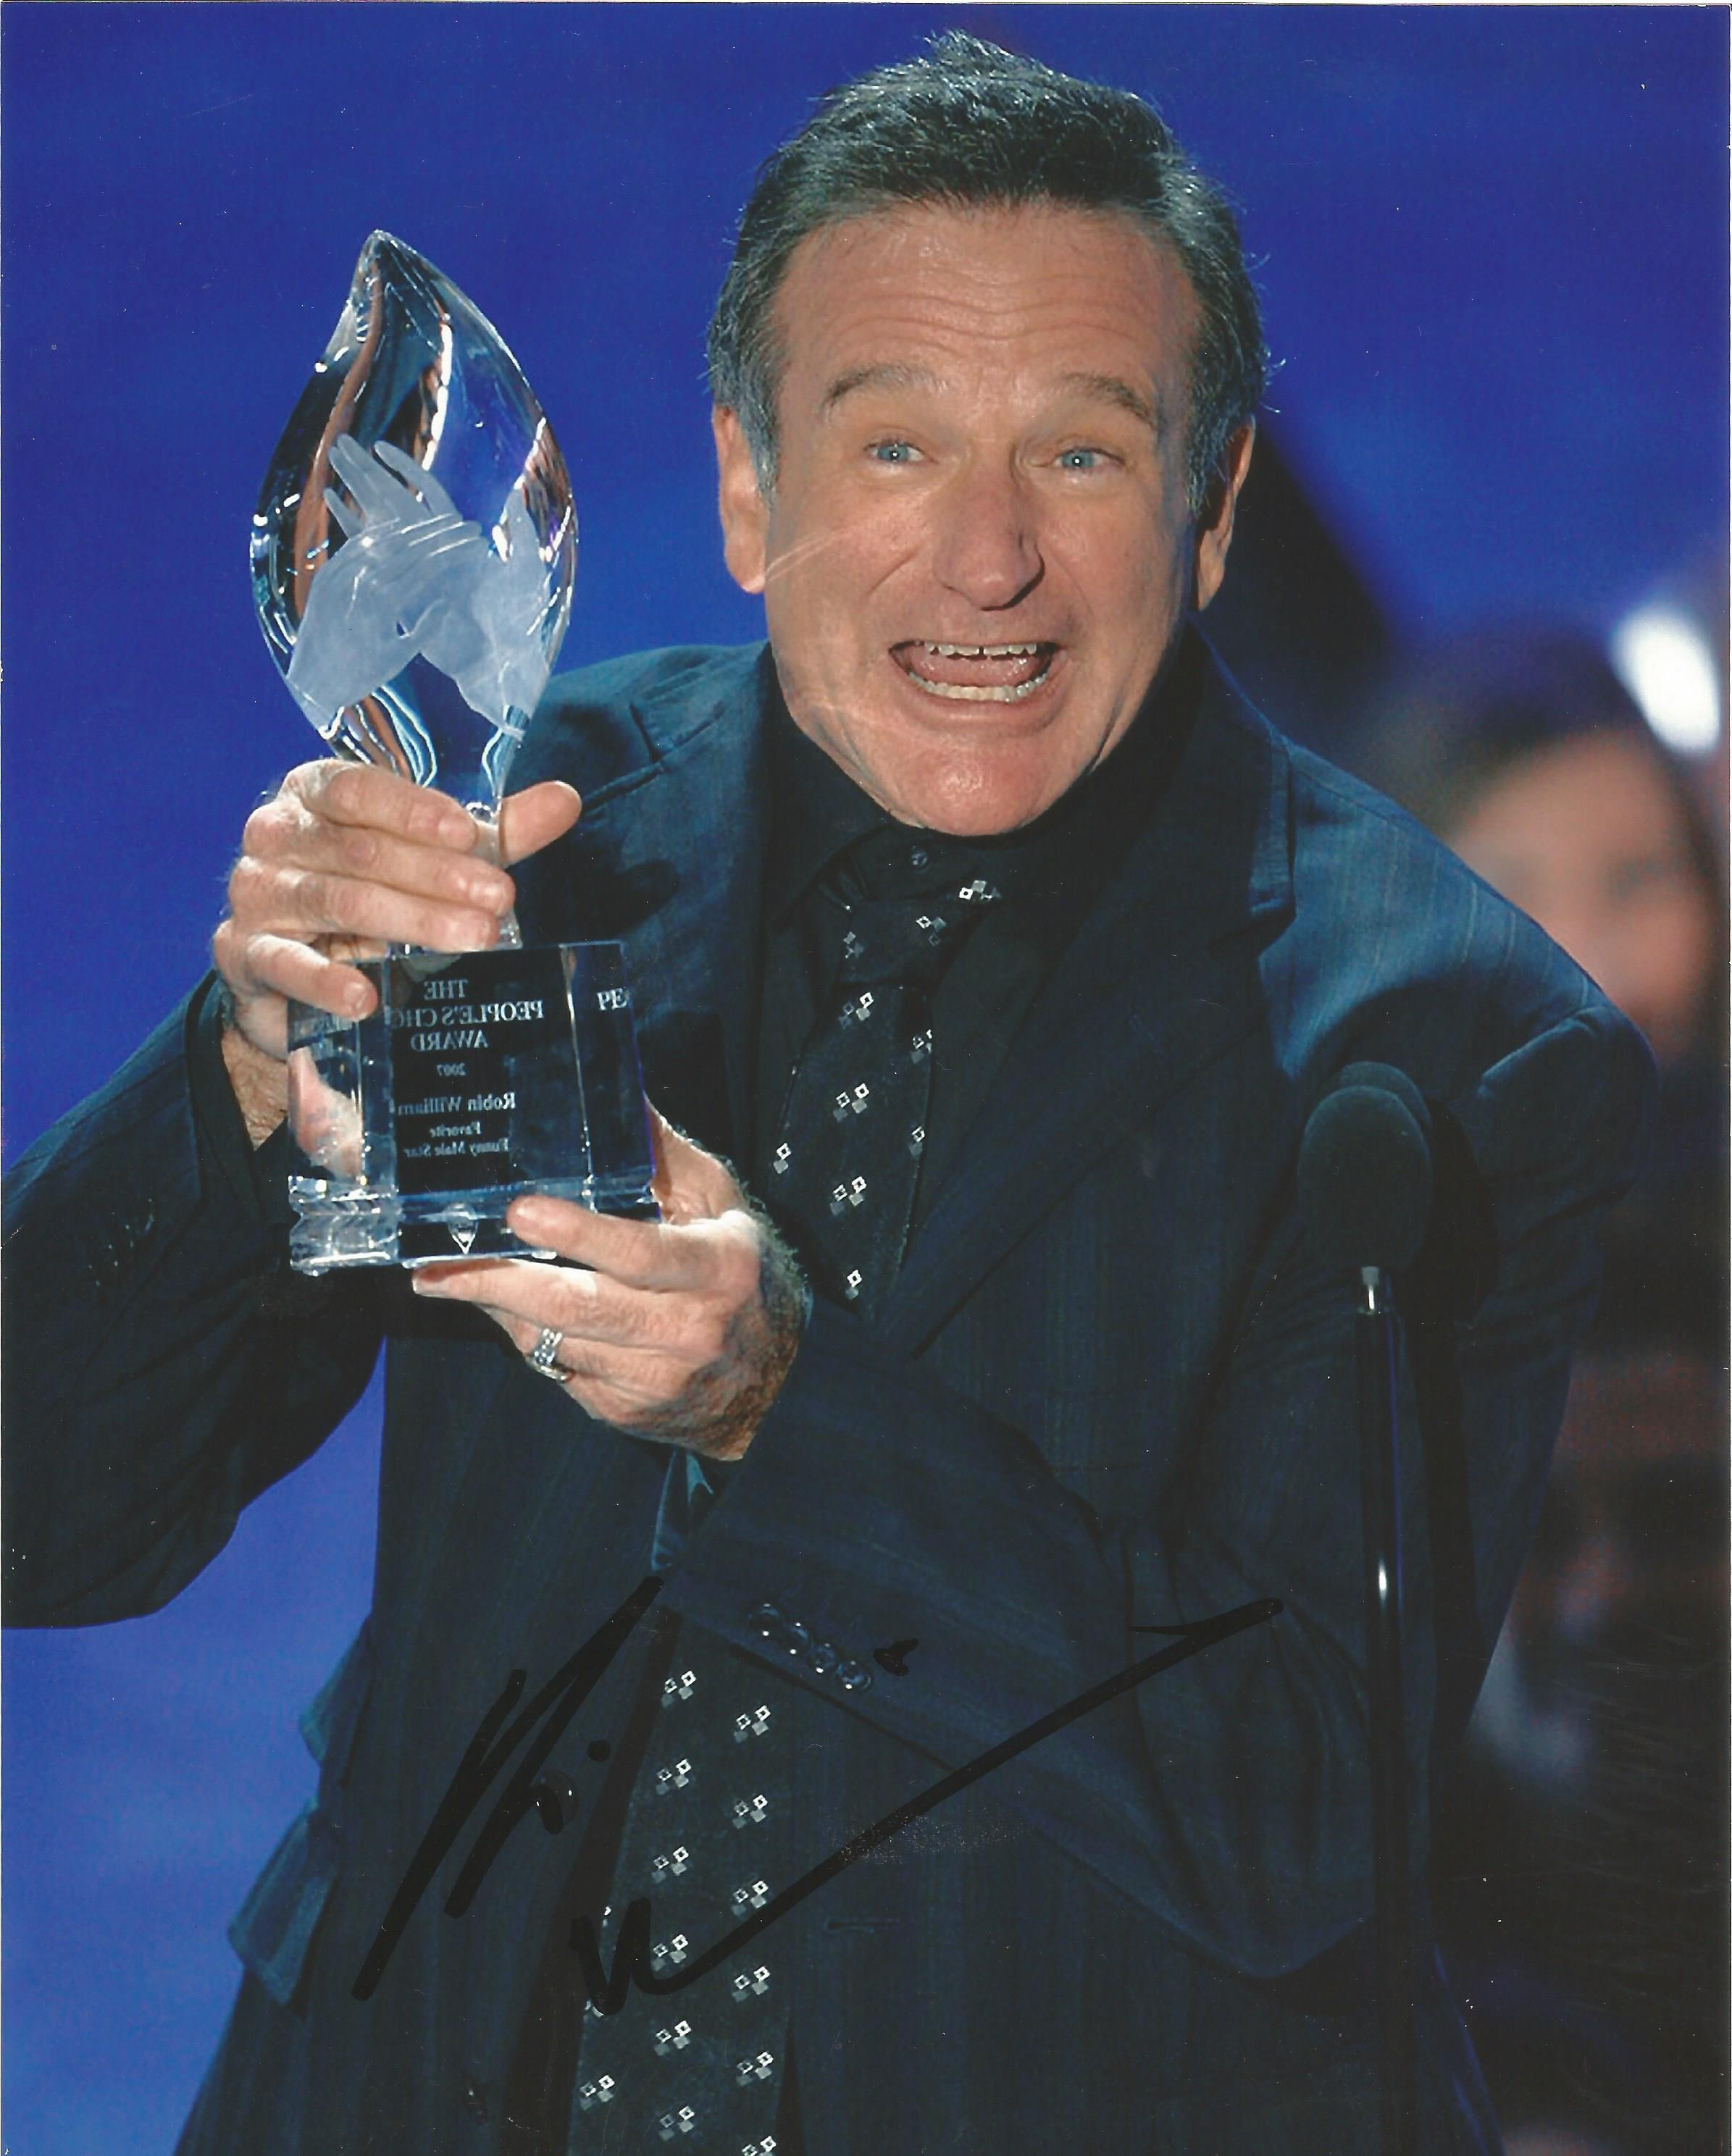 Lot 61 - Robin Williams signed 10 x 8 colour Portrait Photo, from in person collection autographed at An